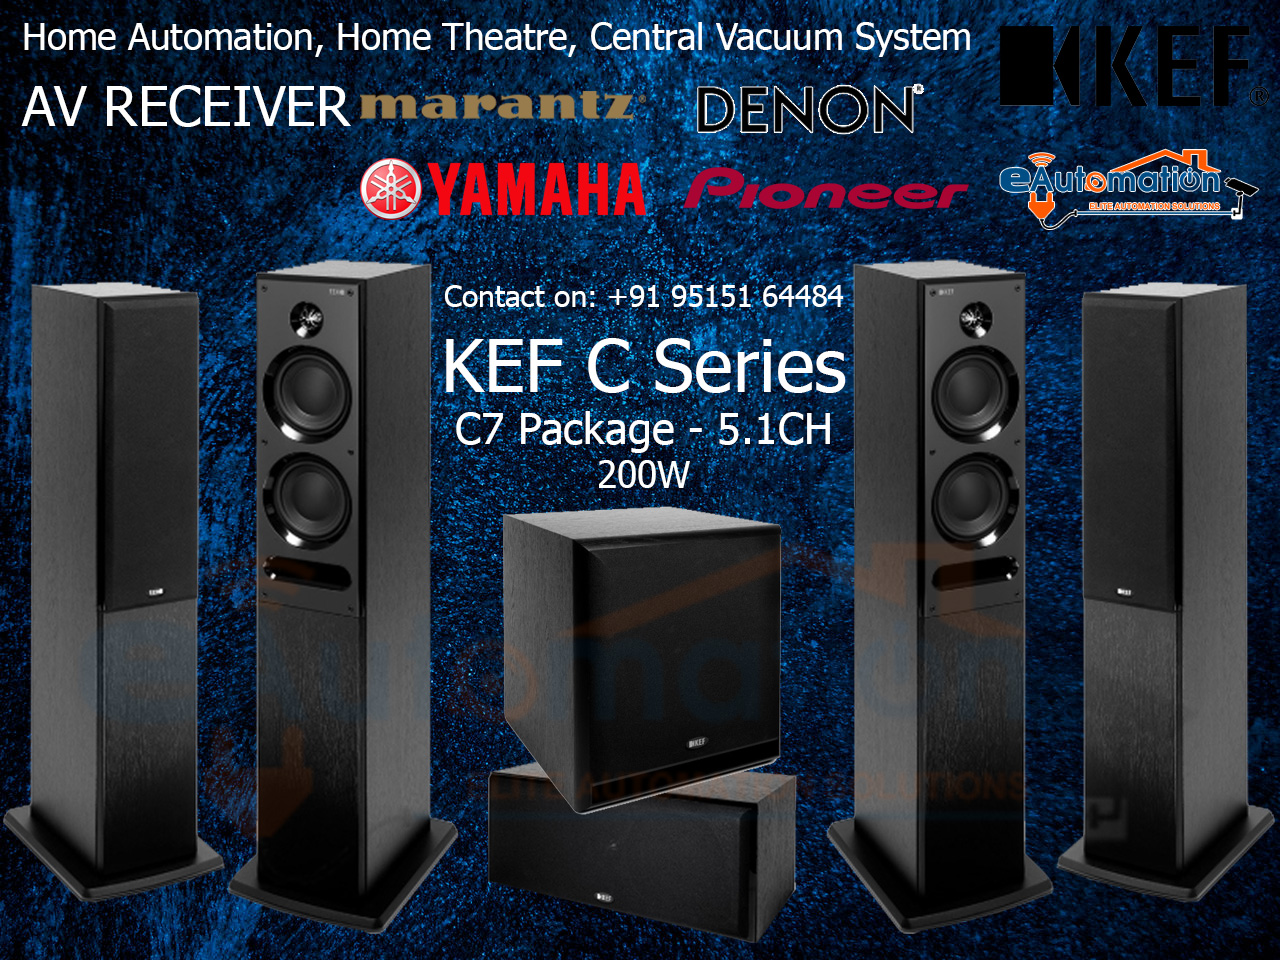 KEF C7 Floorstanding Home Theater Package - KEF HOME Theater Systems